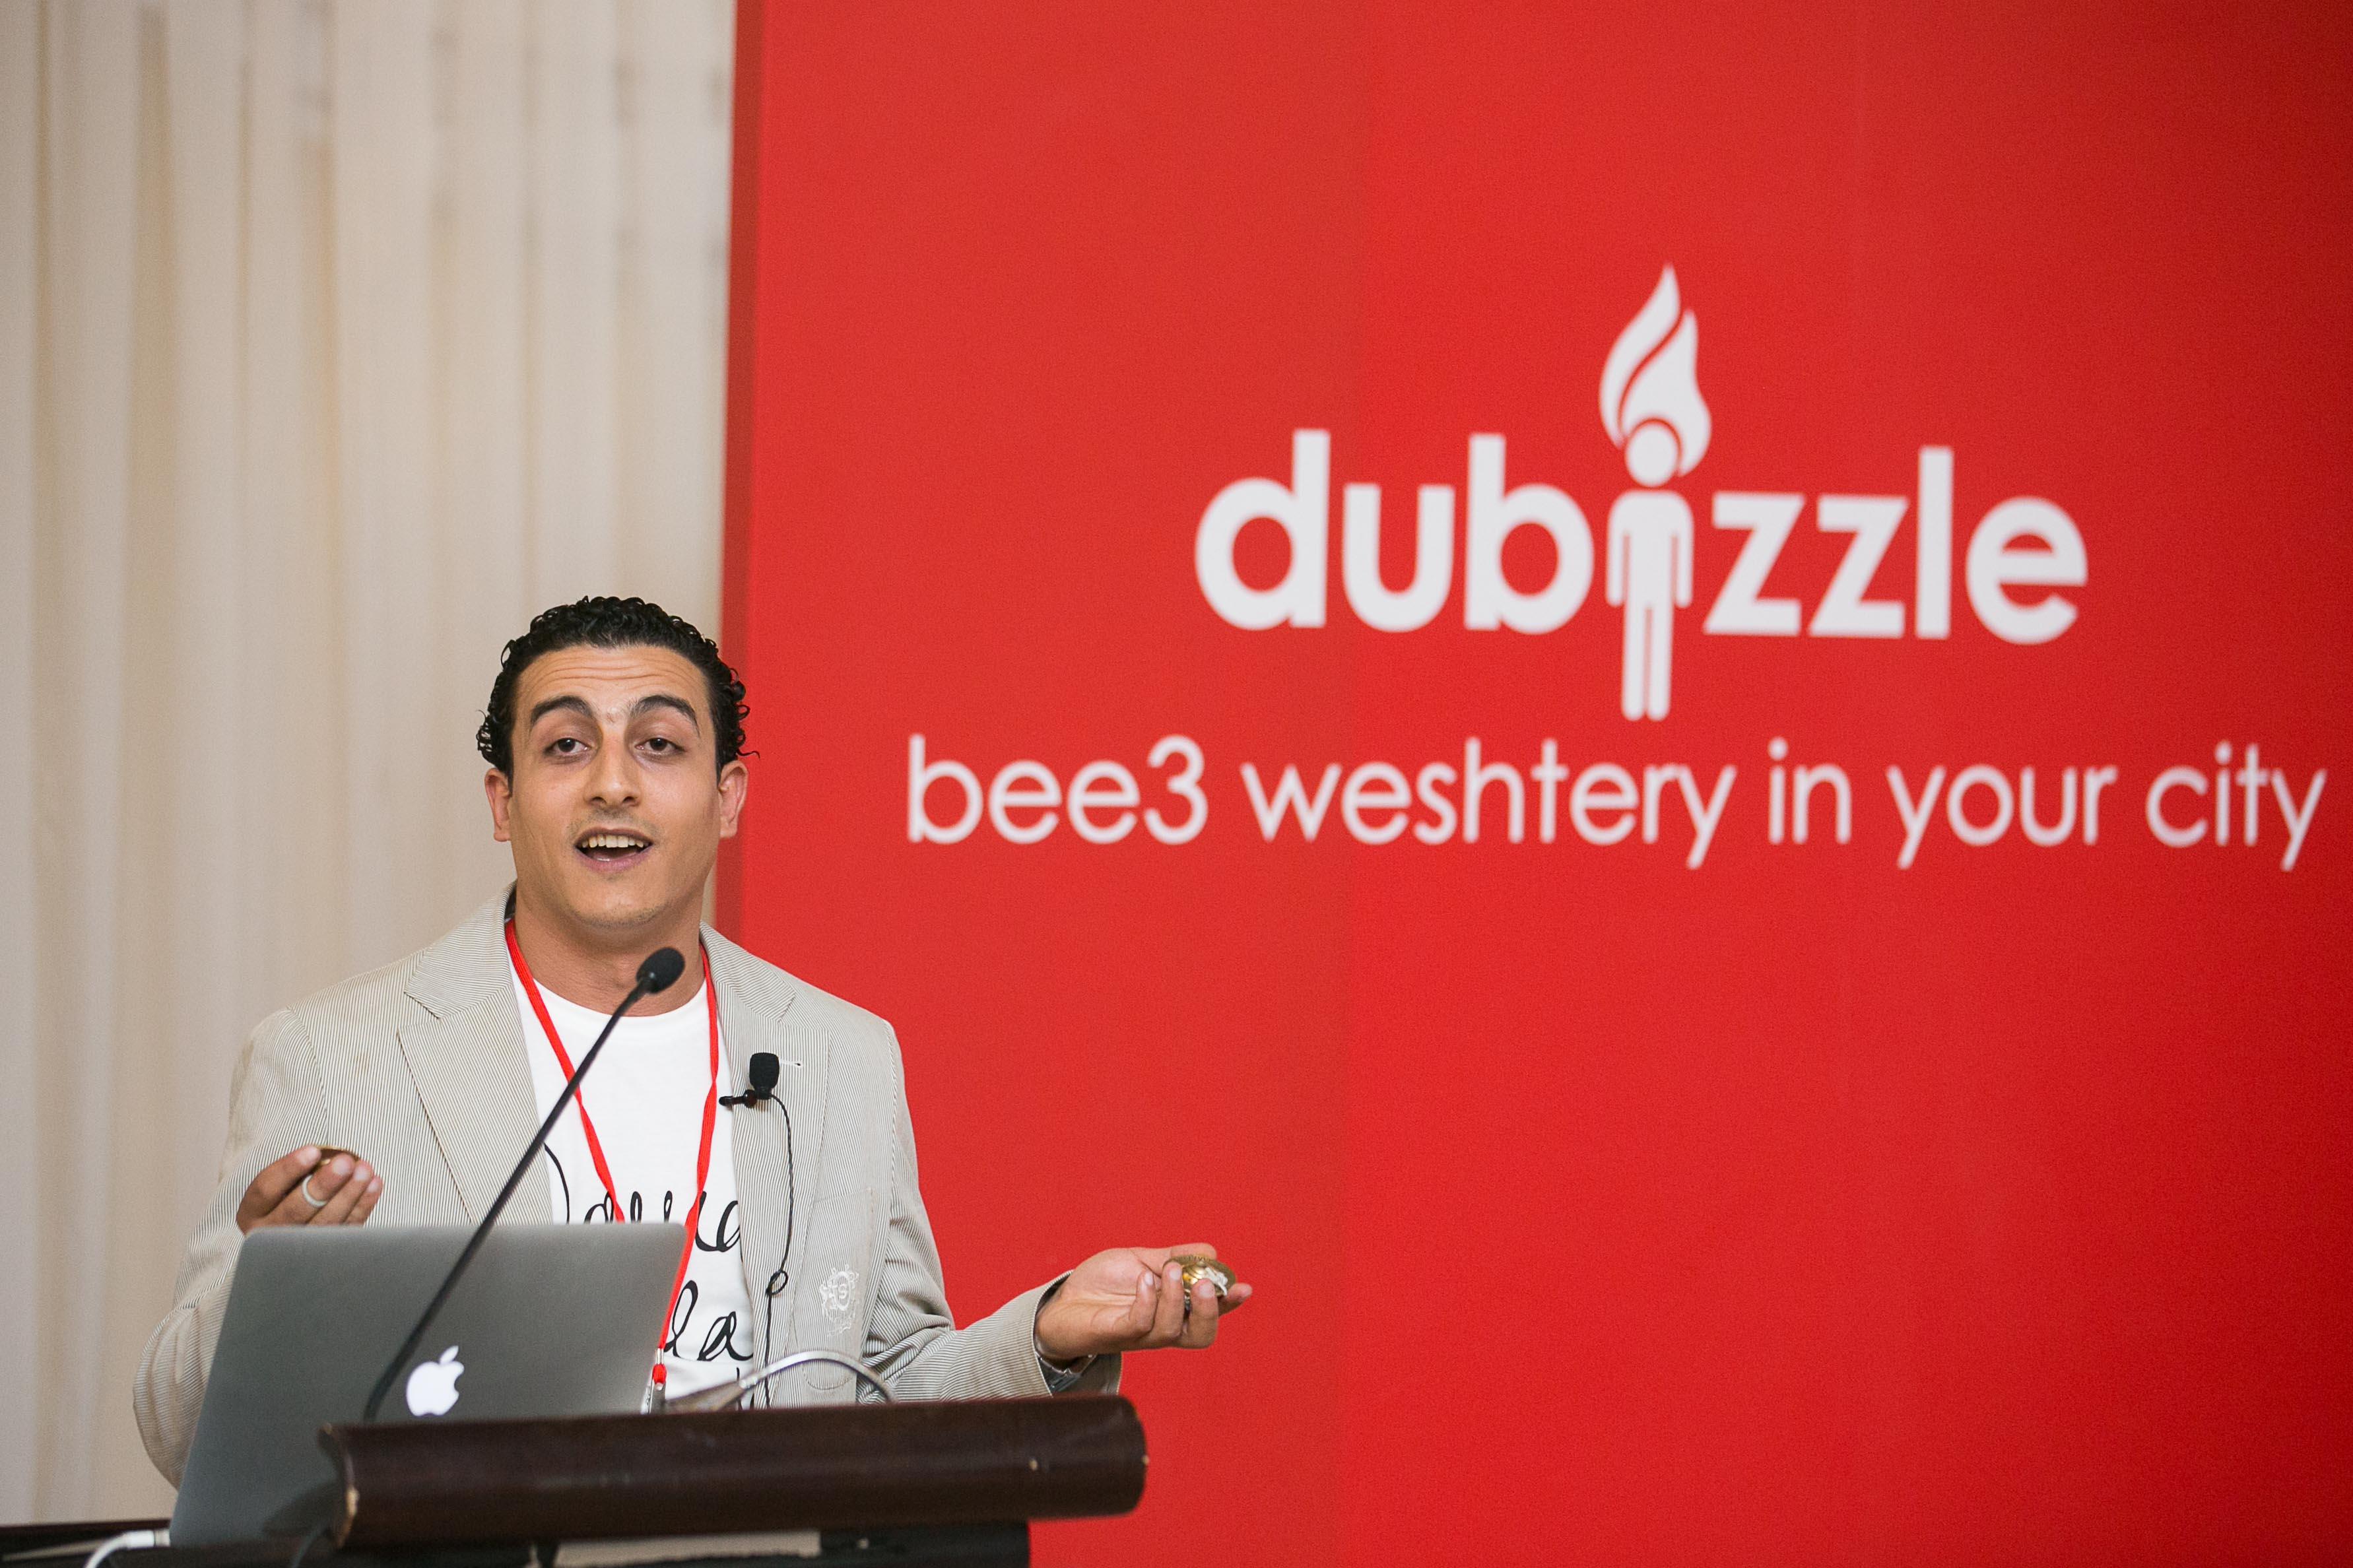 Dubizzle Seeks to Change Culture of Ownership in Egypt